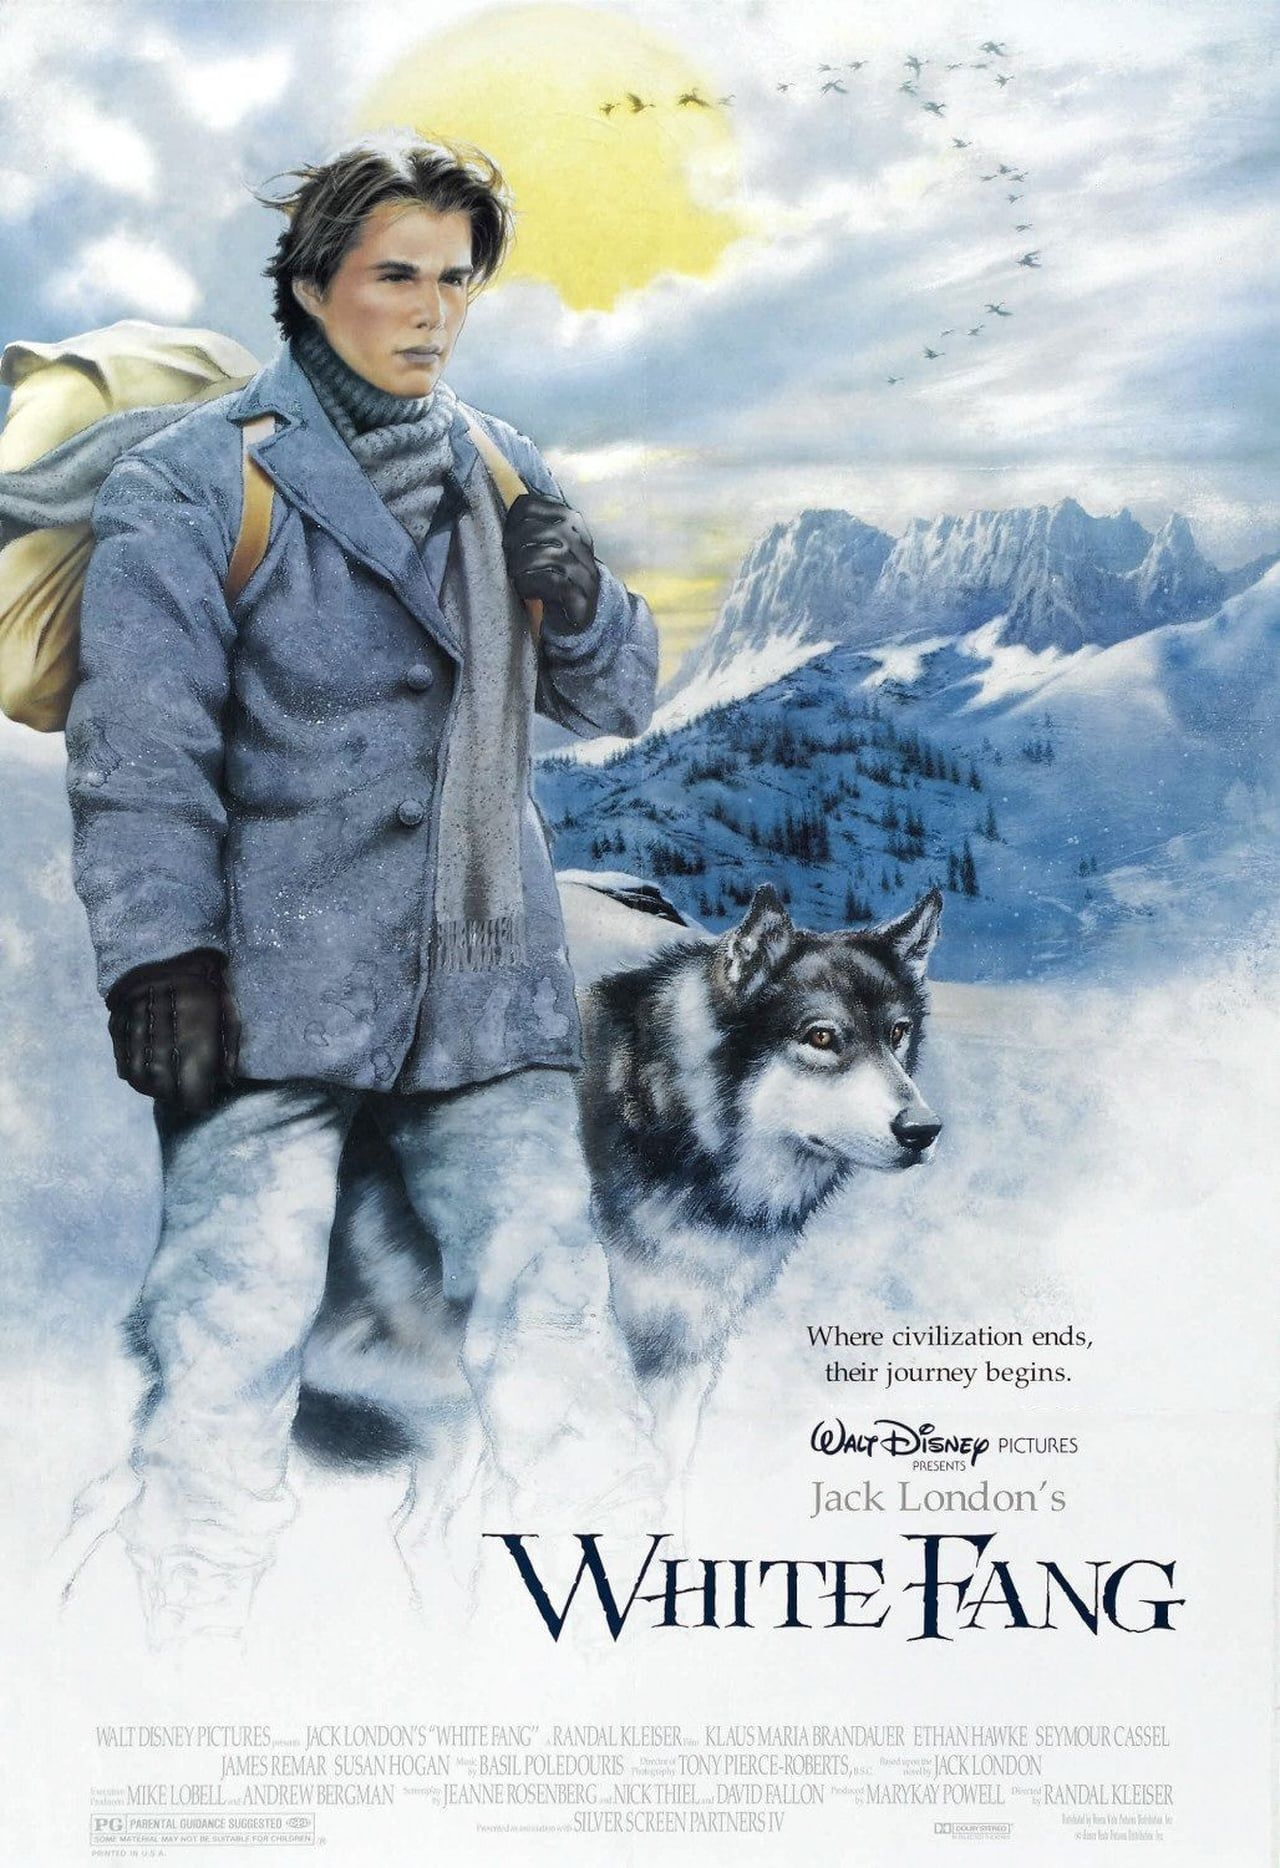 Worksheets White Fang 8th Grade white fang 1991 jack londons classic adventure story about the 1991